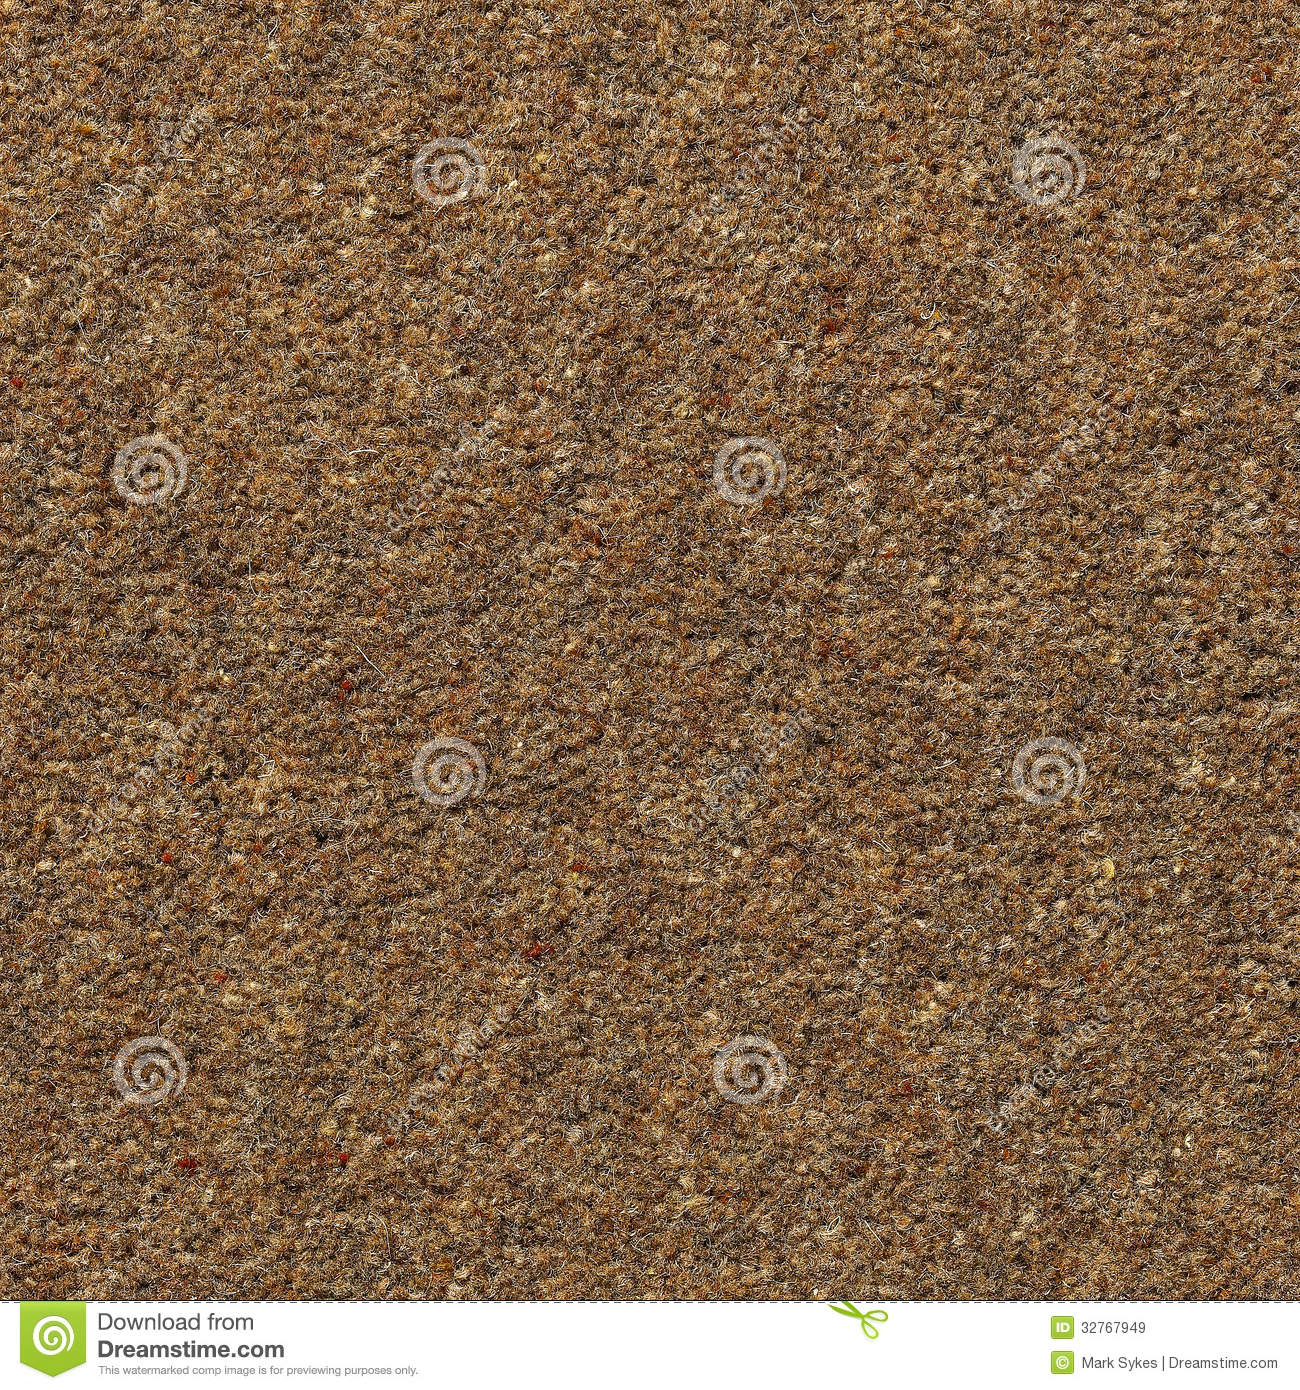 Woven Tan Light Brown Carpet Texture Royalty Free Stock